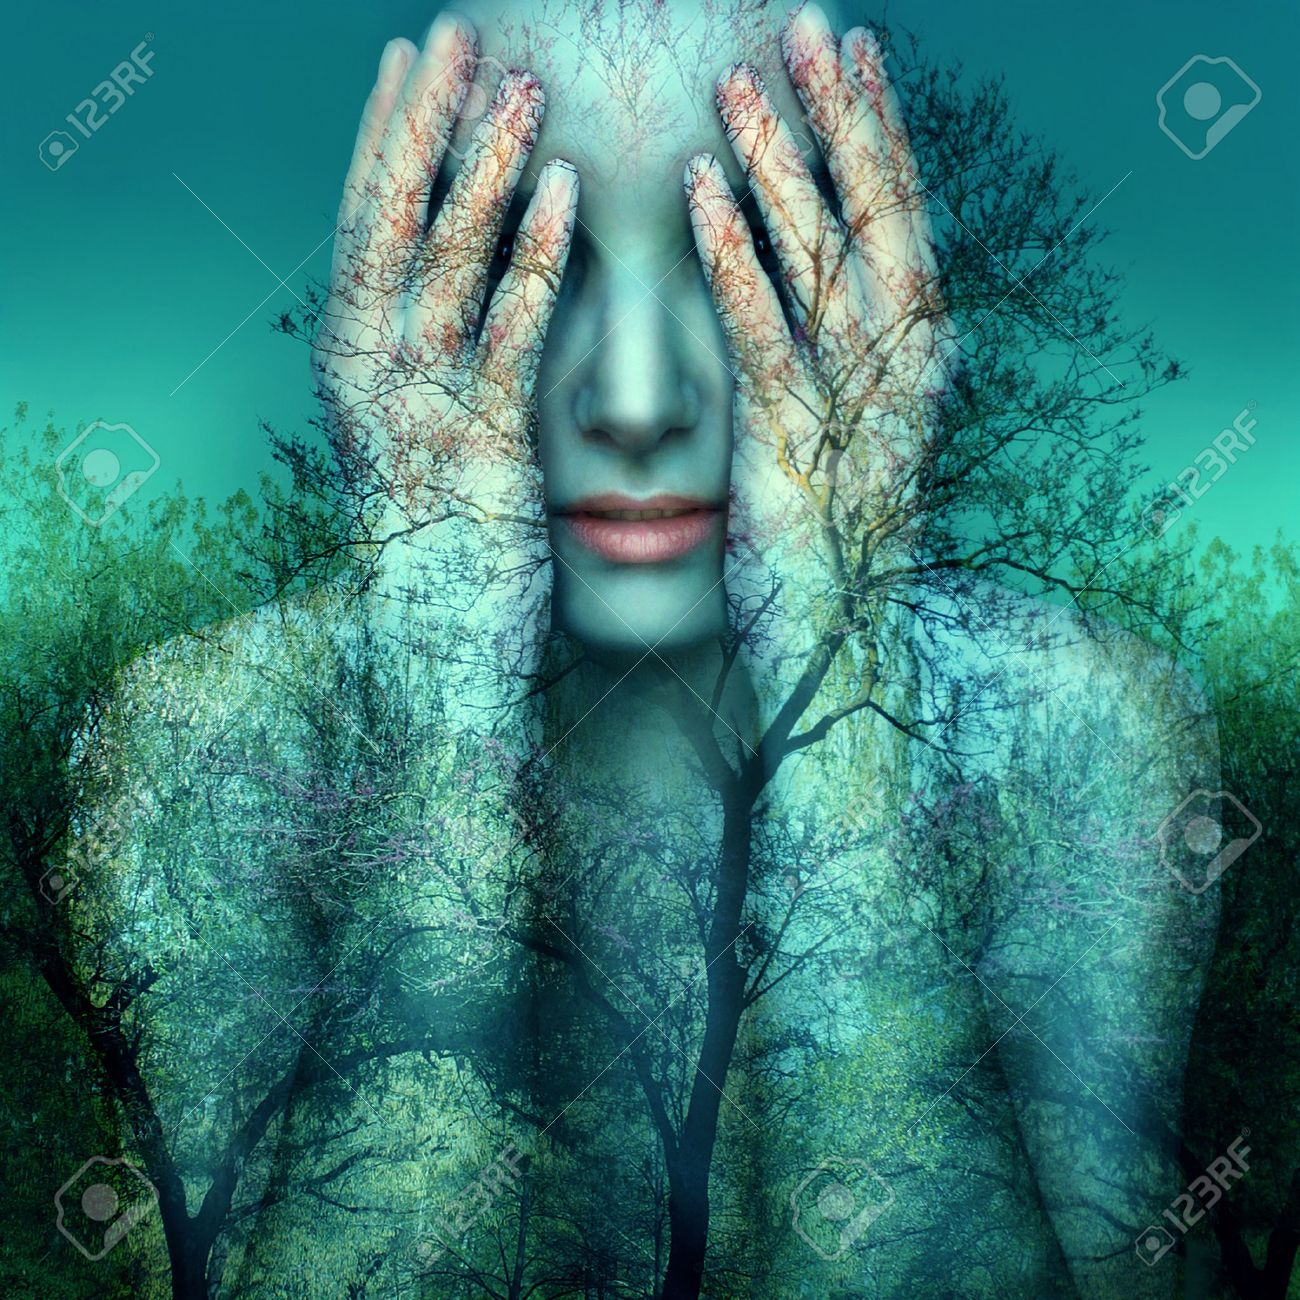 Surreal and artistic image of a girl who covers her eyes with her hands on a background of trees and sky - 53633006